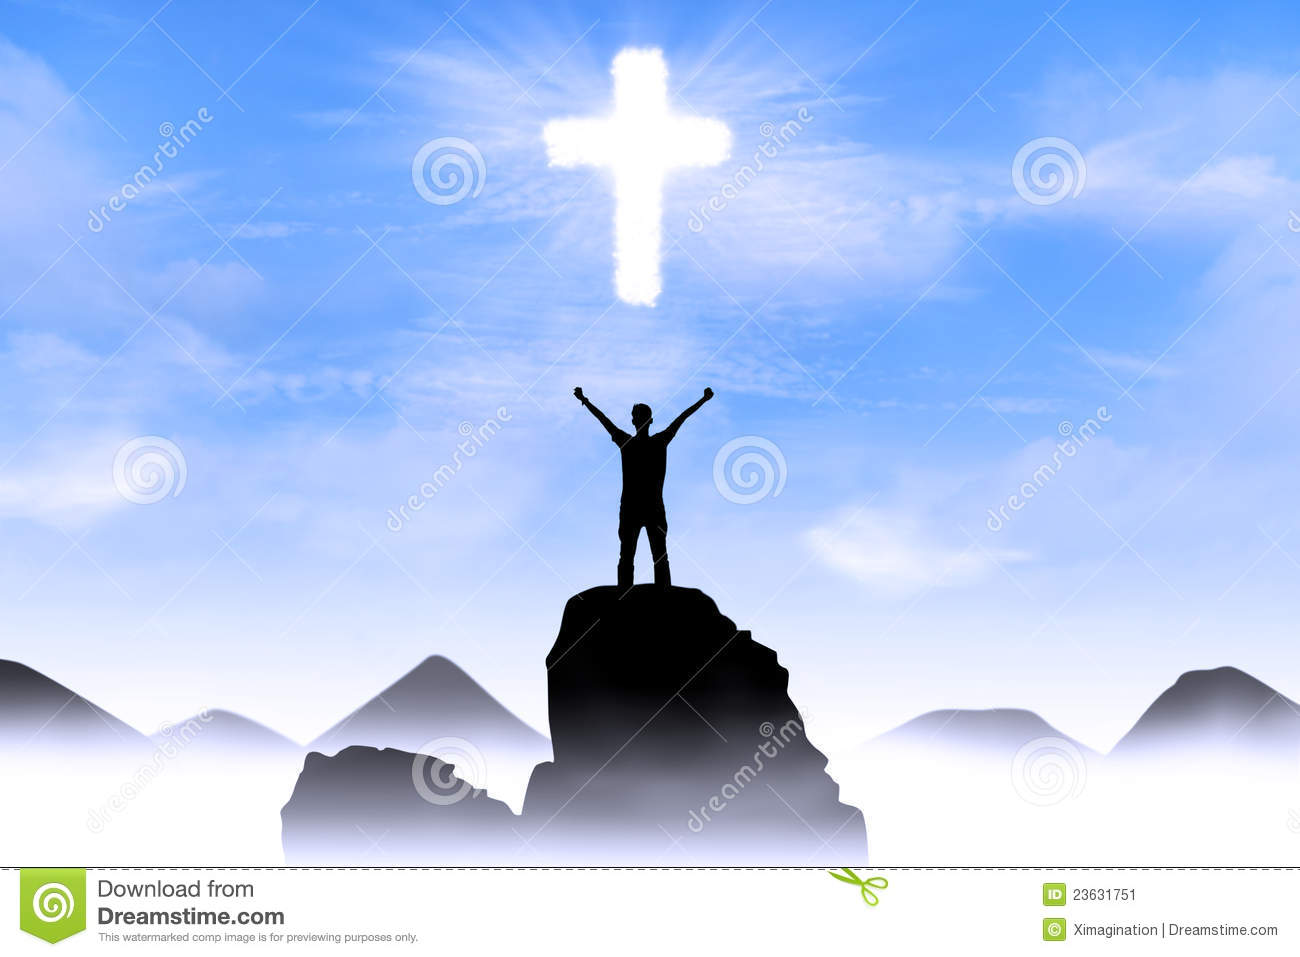 Christian background: Man worshiping God